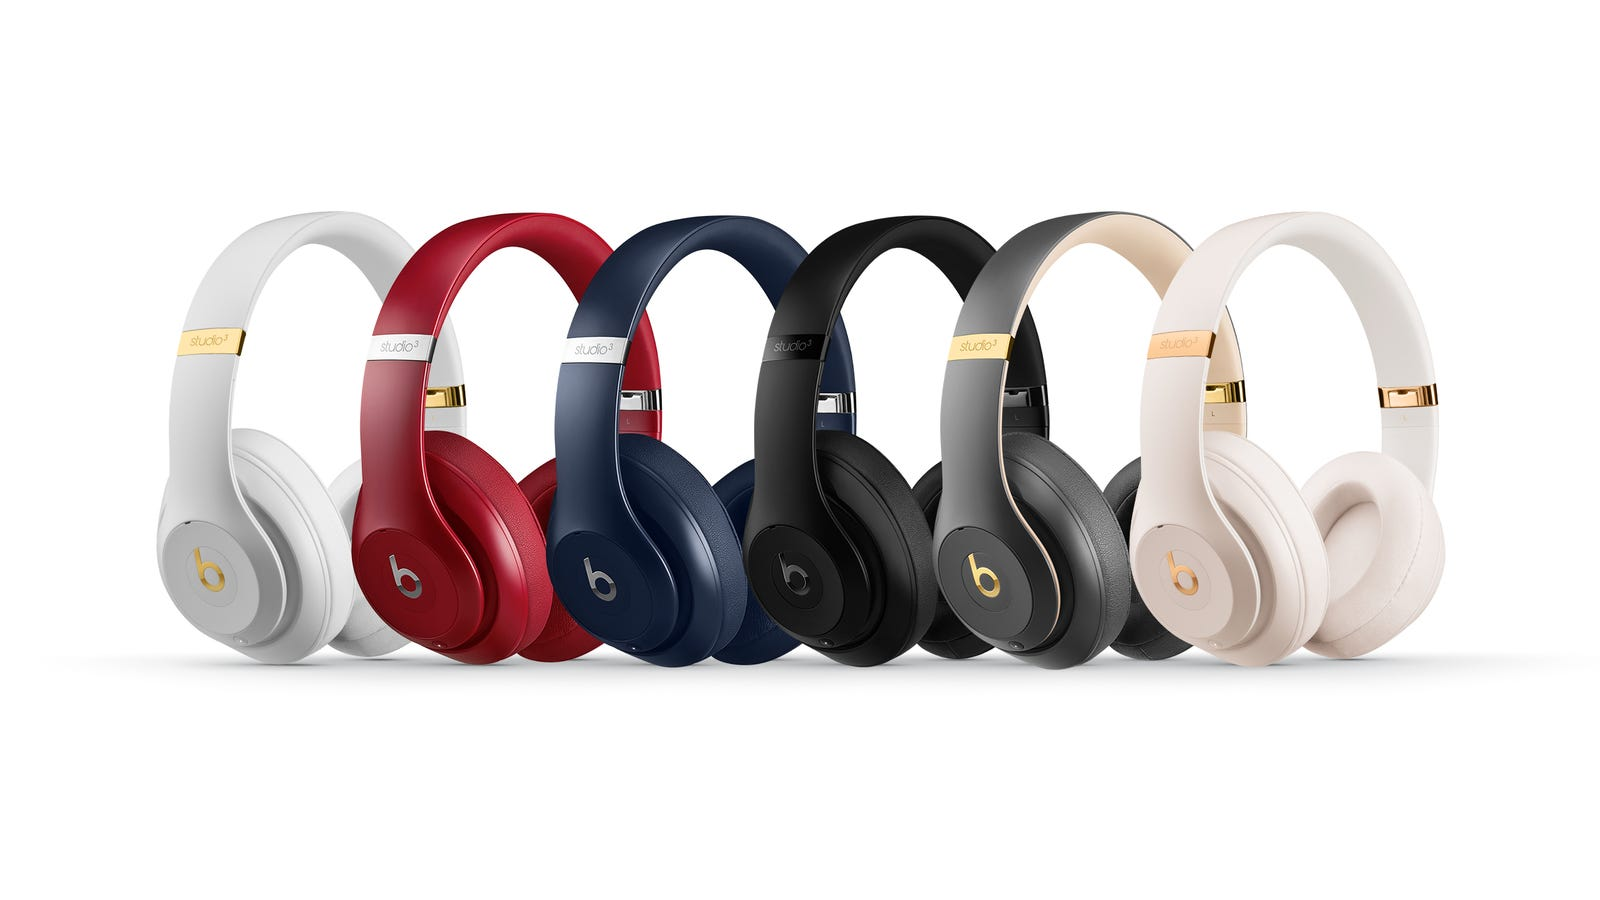 wireless headphones lg bluetooth 760 - Dr. Dre and Jimmy Iovine Ordered to Pay $25 Million to Former Beats Partner